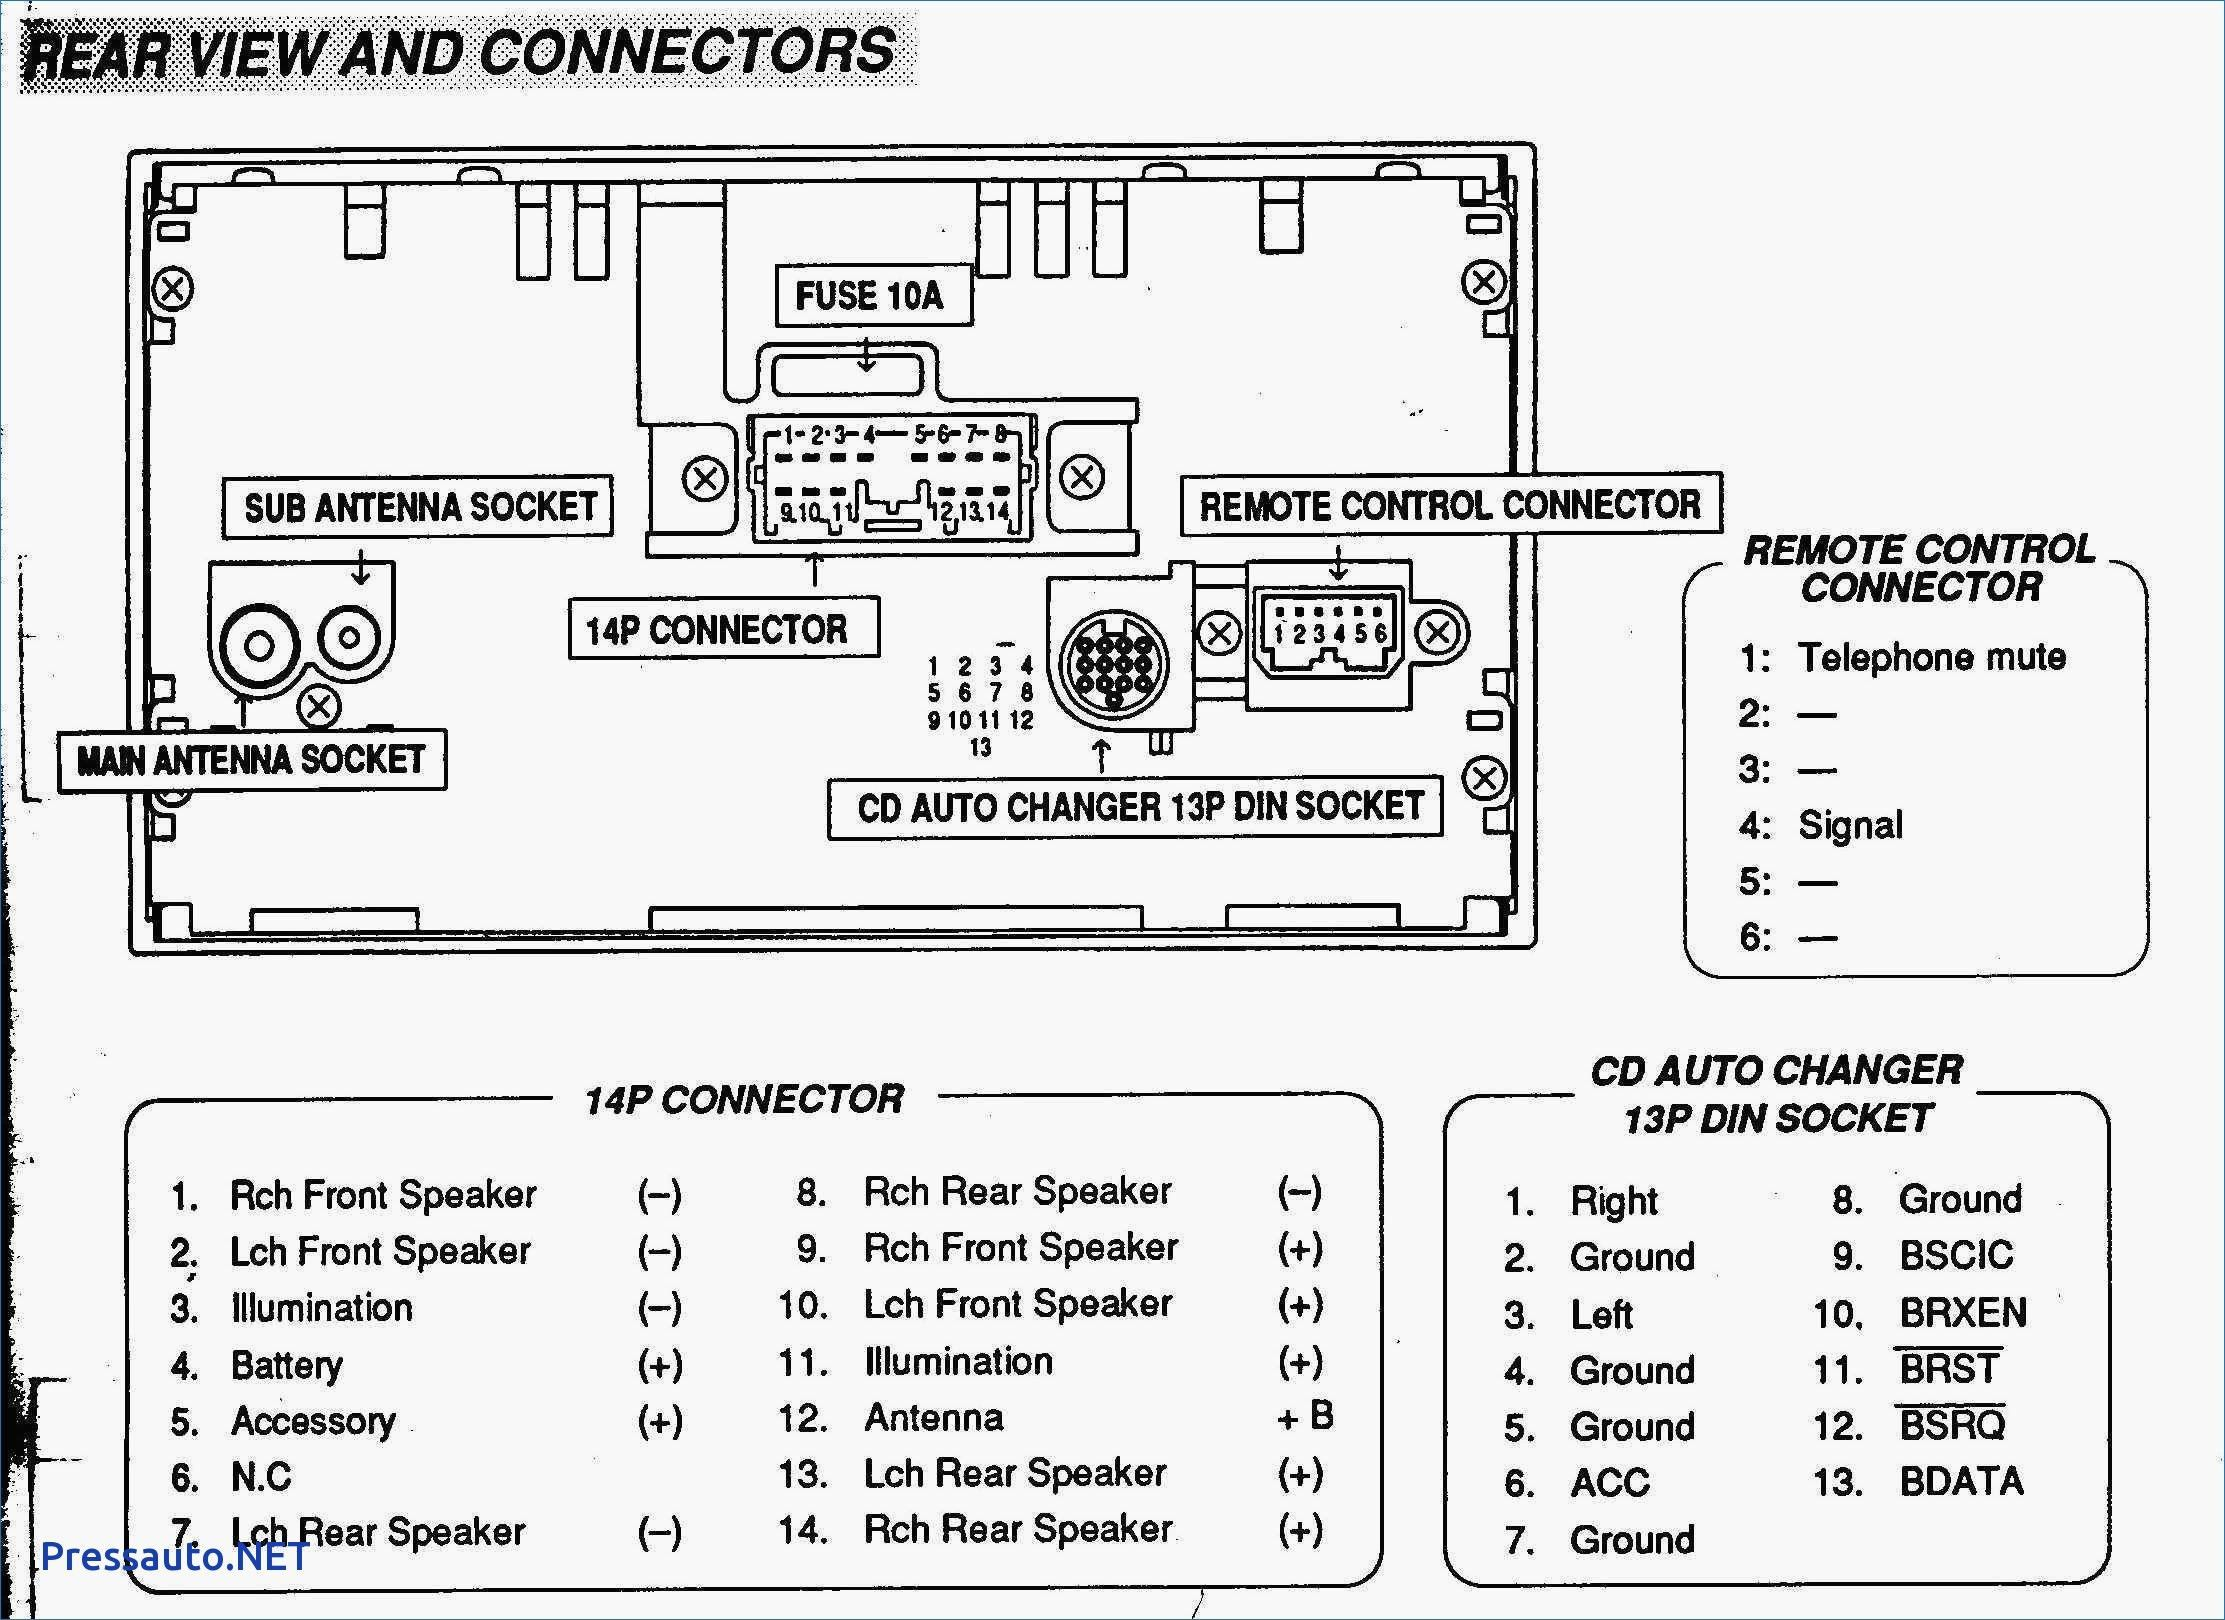 2003 Ford Expedition Radio Dvd Wiring Diagram Mitsubishi Cars Electrical Wiring Diagram Car Stereo